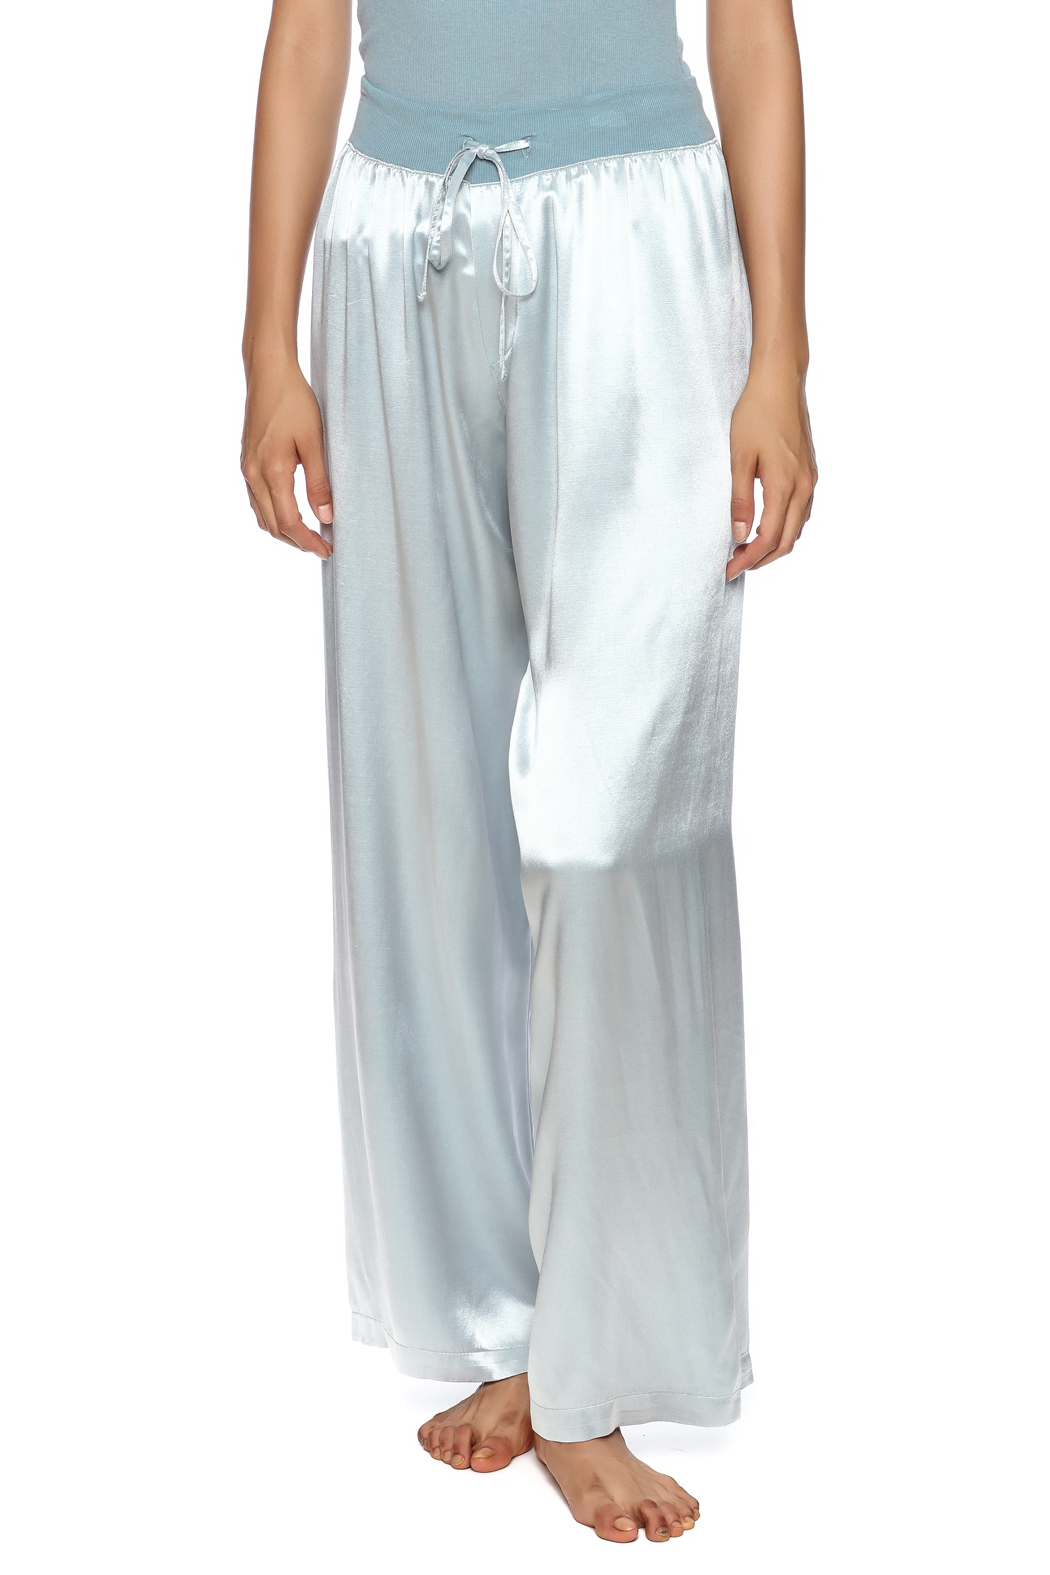 957b54445dc PJ Harlow Drawstring Satin Pant from Rhode Island by Soap Water ...